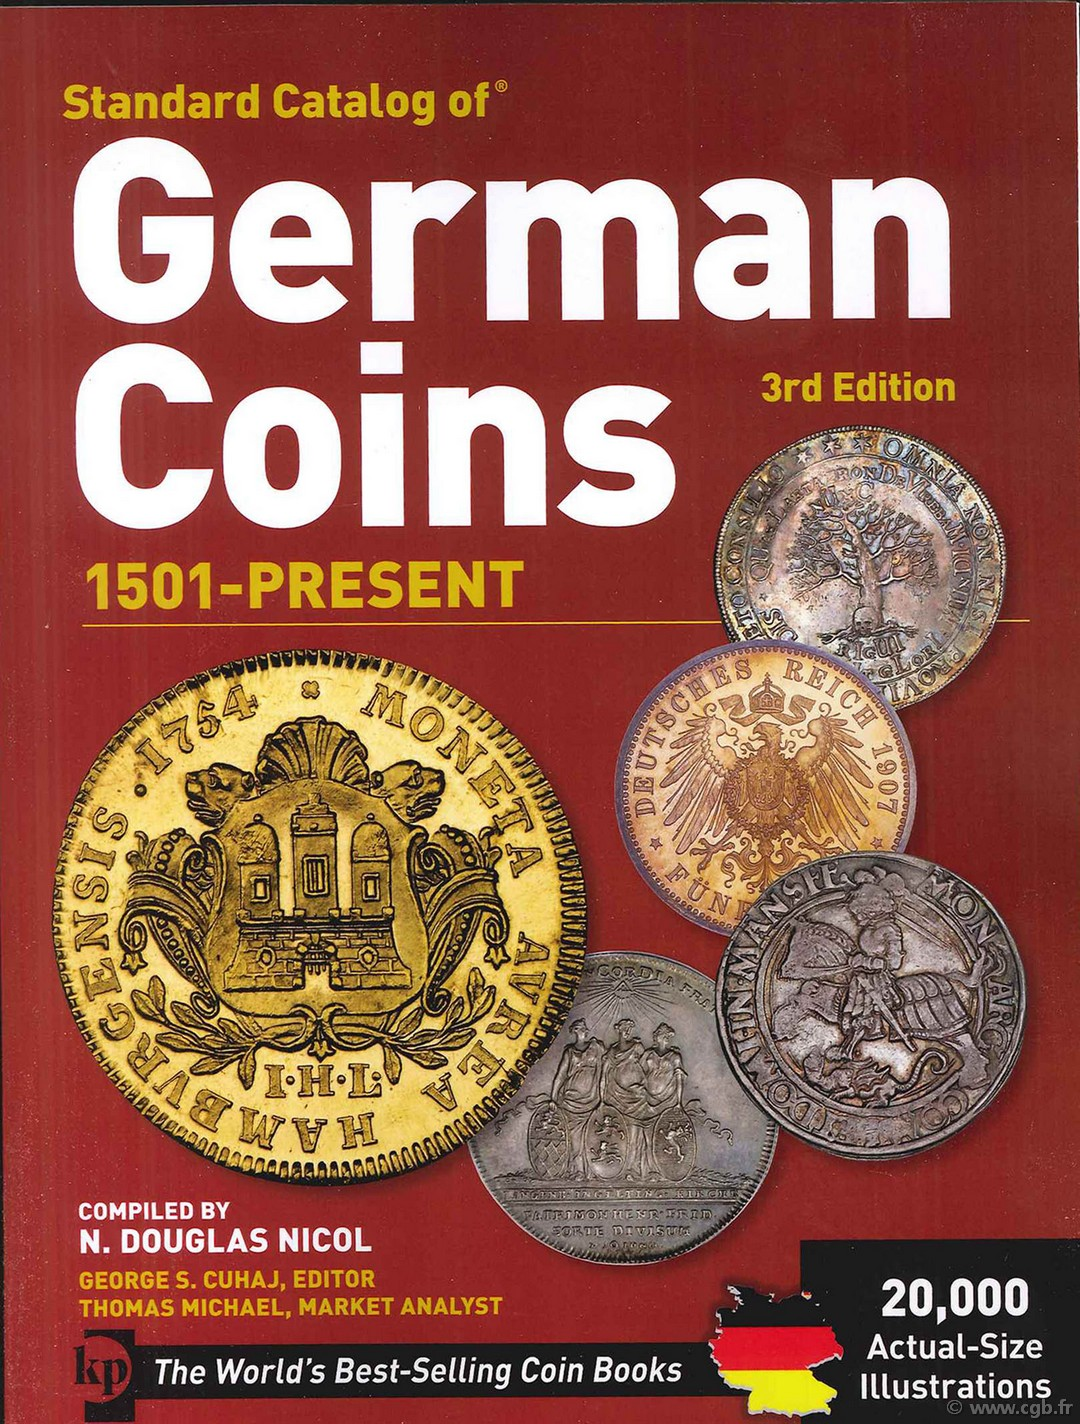 Standard Catalog of German Coins 1501 to present , 3rd edition DOUGLAS NICOL N., CUHAJ G., MICHAEL Th.